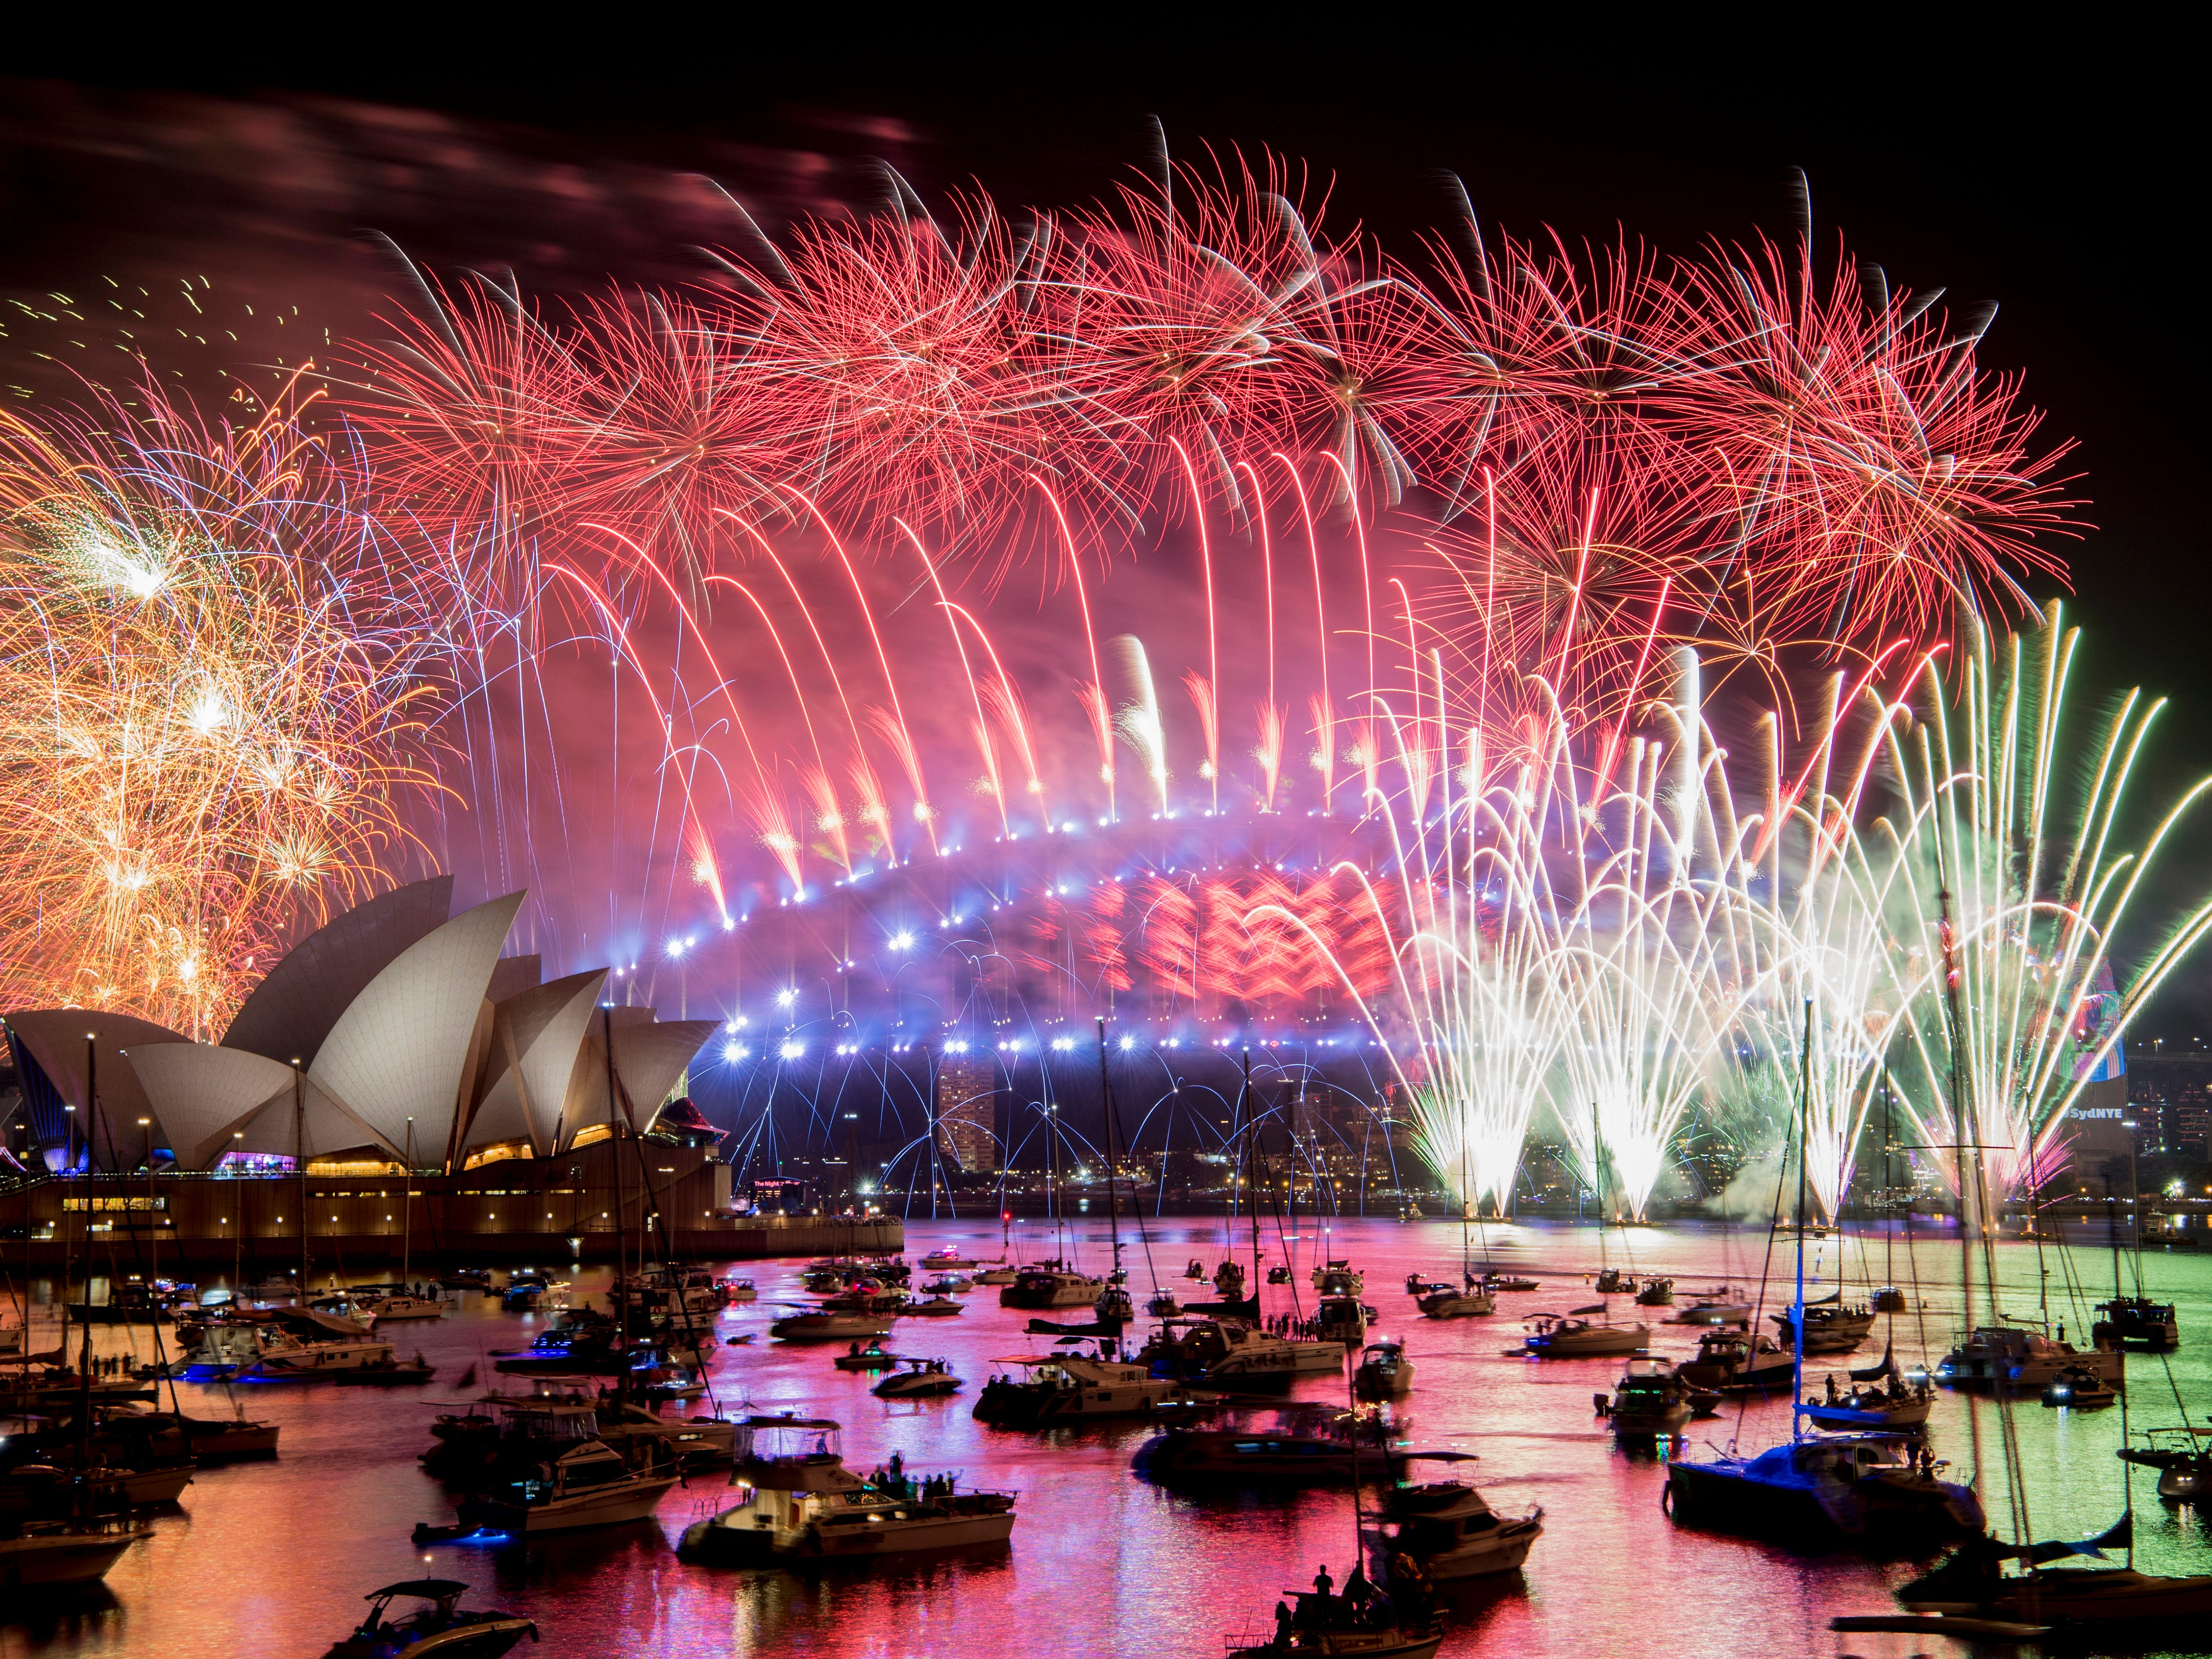 Fireworks explode over the Sydney Harbour during New Year's Eve celebrations in Sydney, on Jan. 1, 2019.